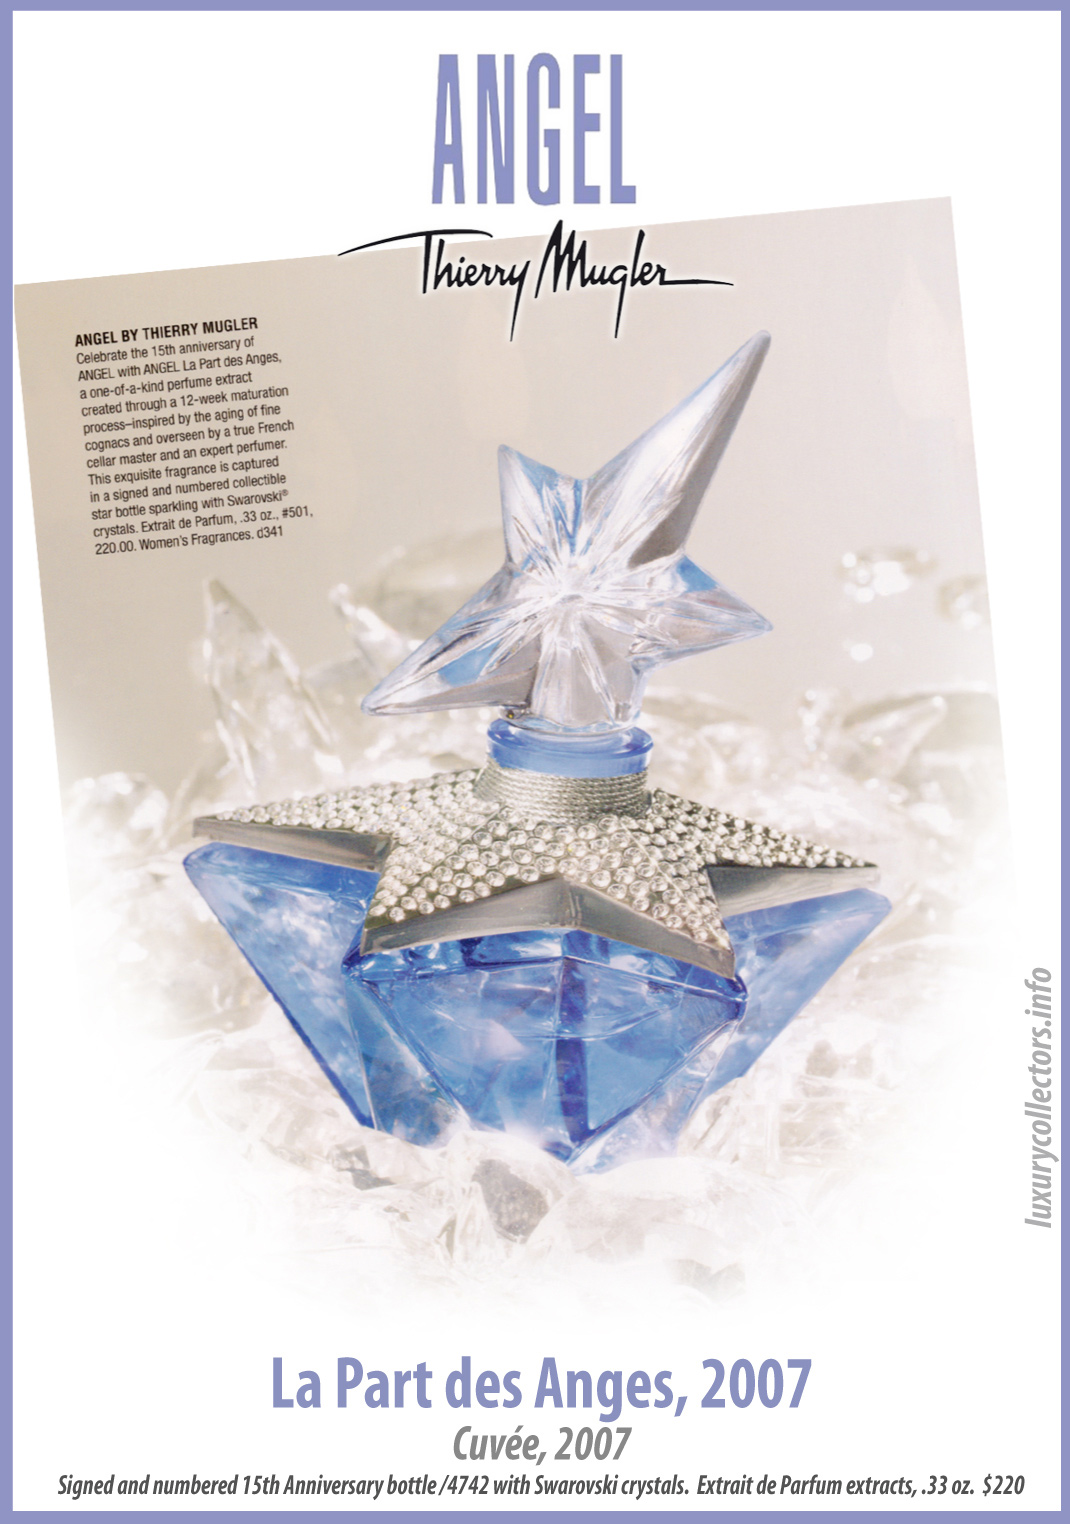 Chronological History of Thierry Mugler's Angel Luxury Perfume Bottles for Collecting